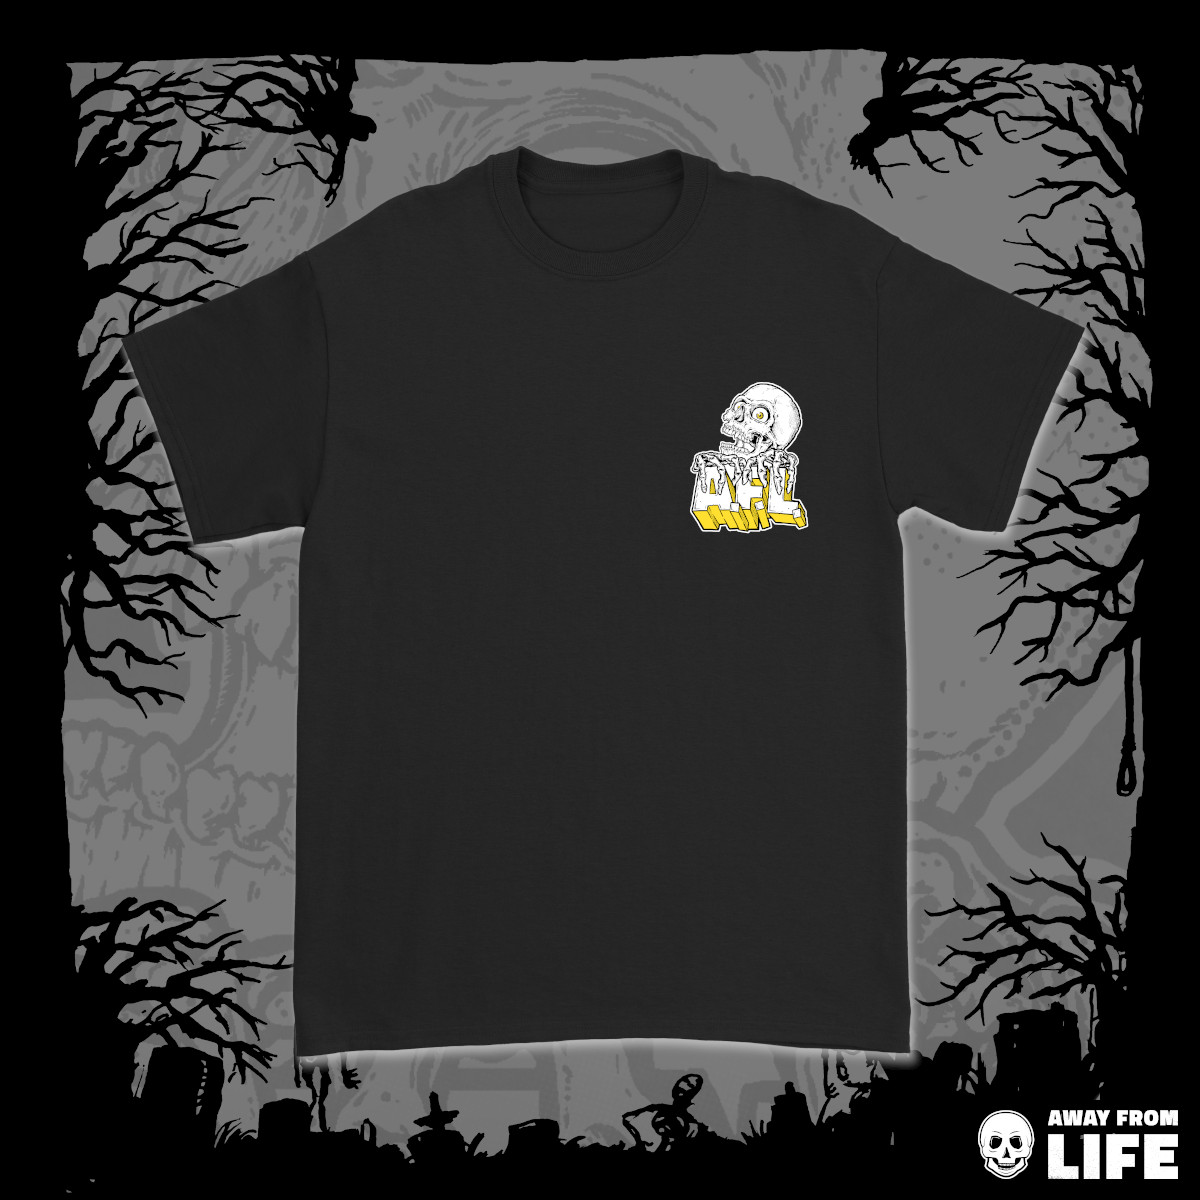 AWAY FROM LIFE - Reaper [schwarzes T-Shirt, Front]